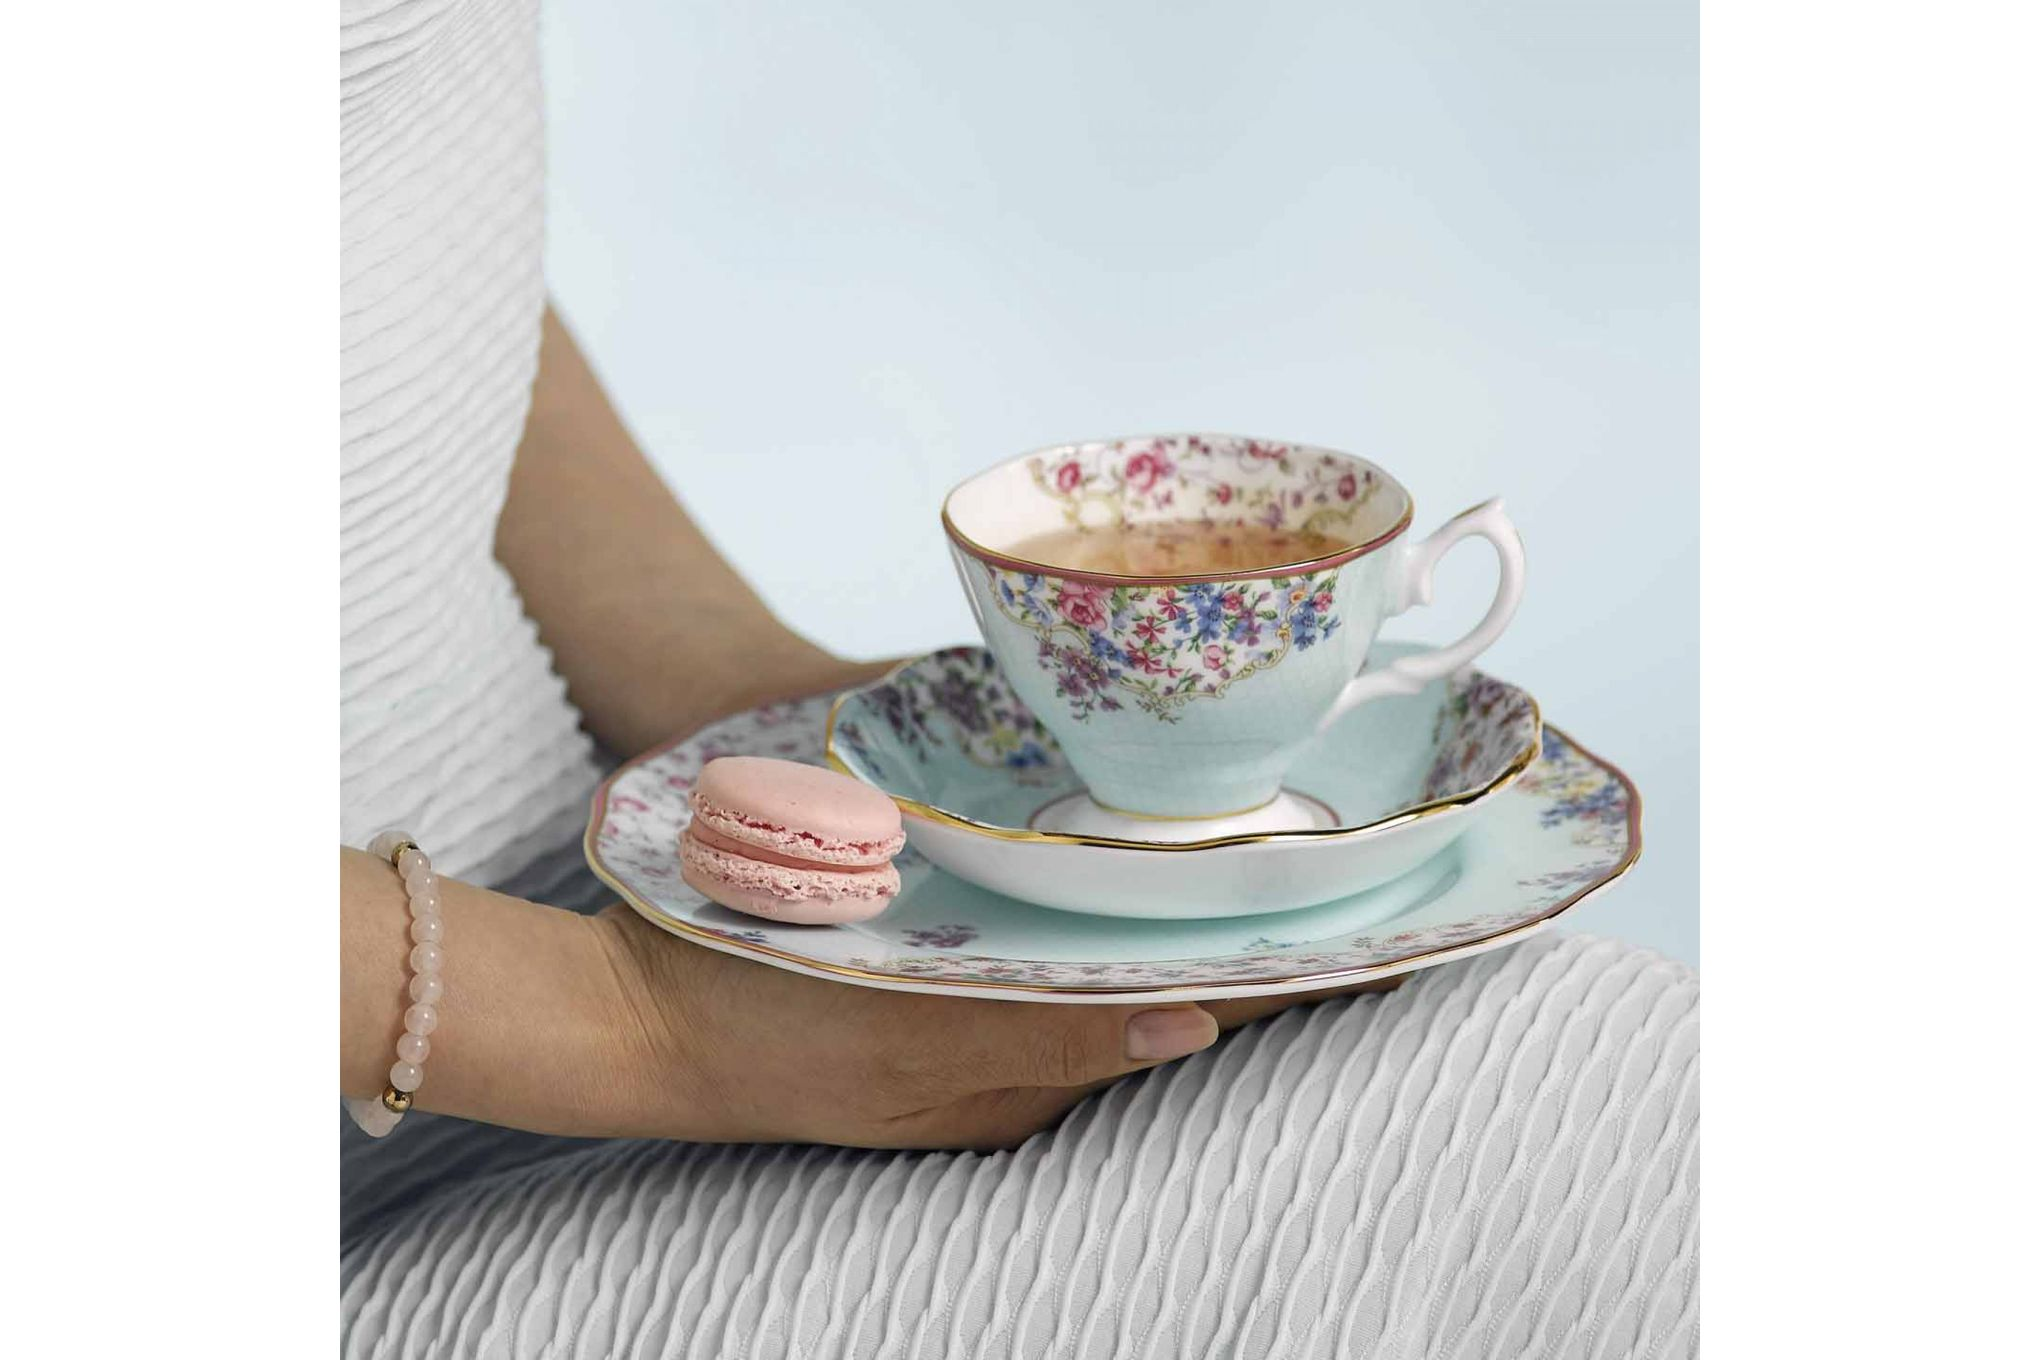 Royal Albert Candy Collection 3 Piece Set Sitting Pretty, Teacup, Saucer & Plate 20cm thumb 3